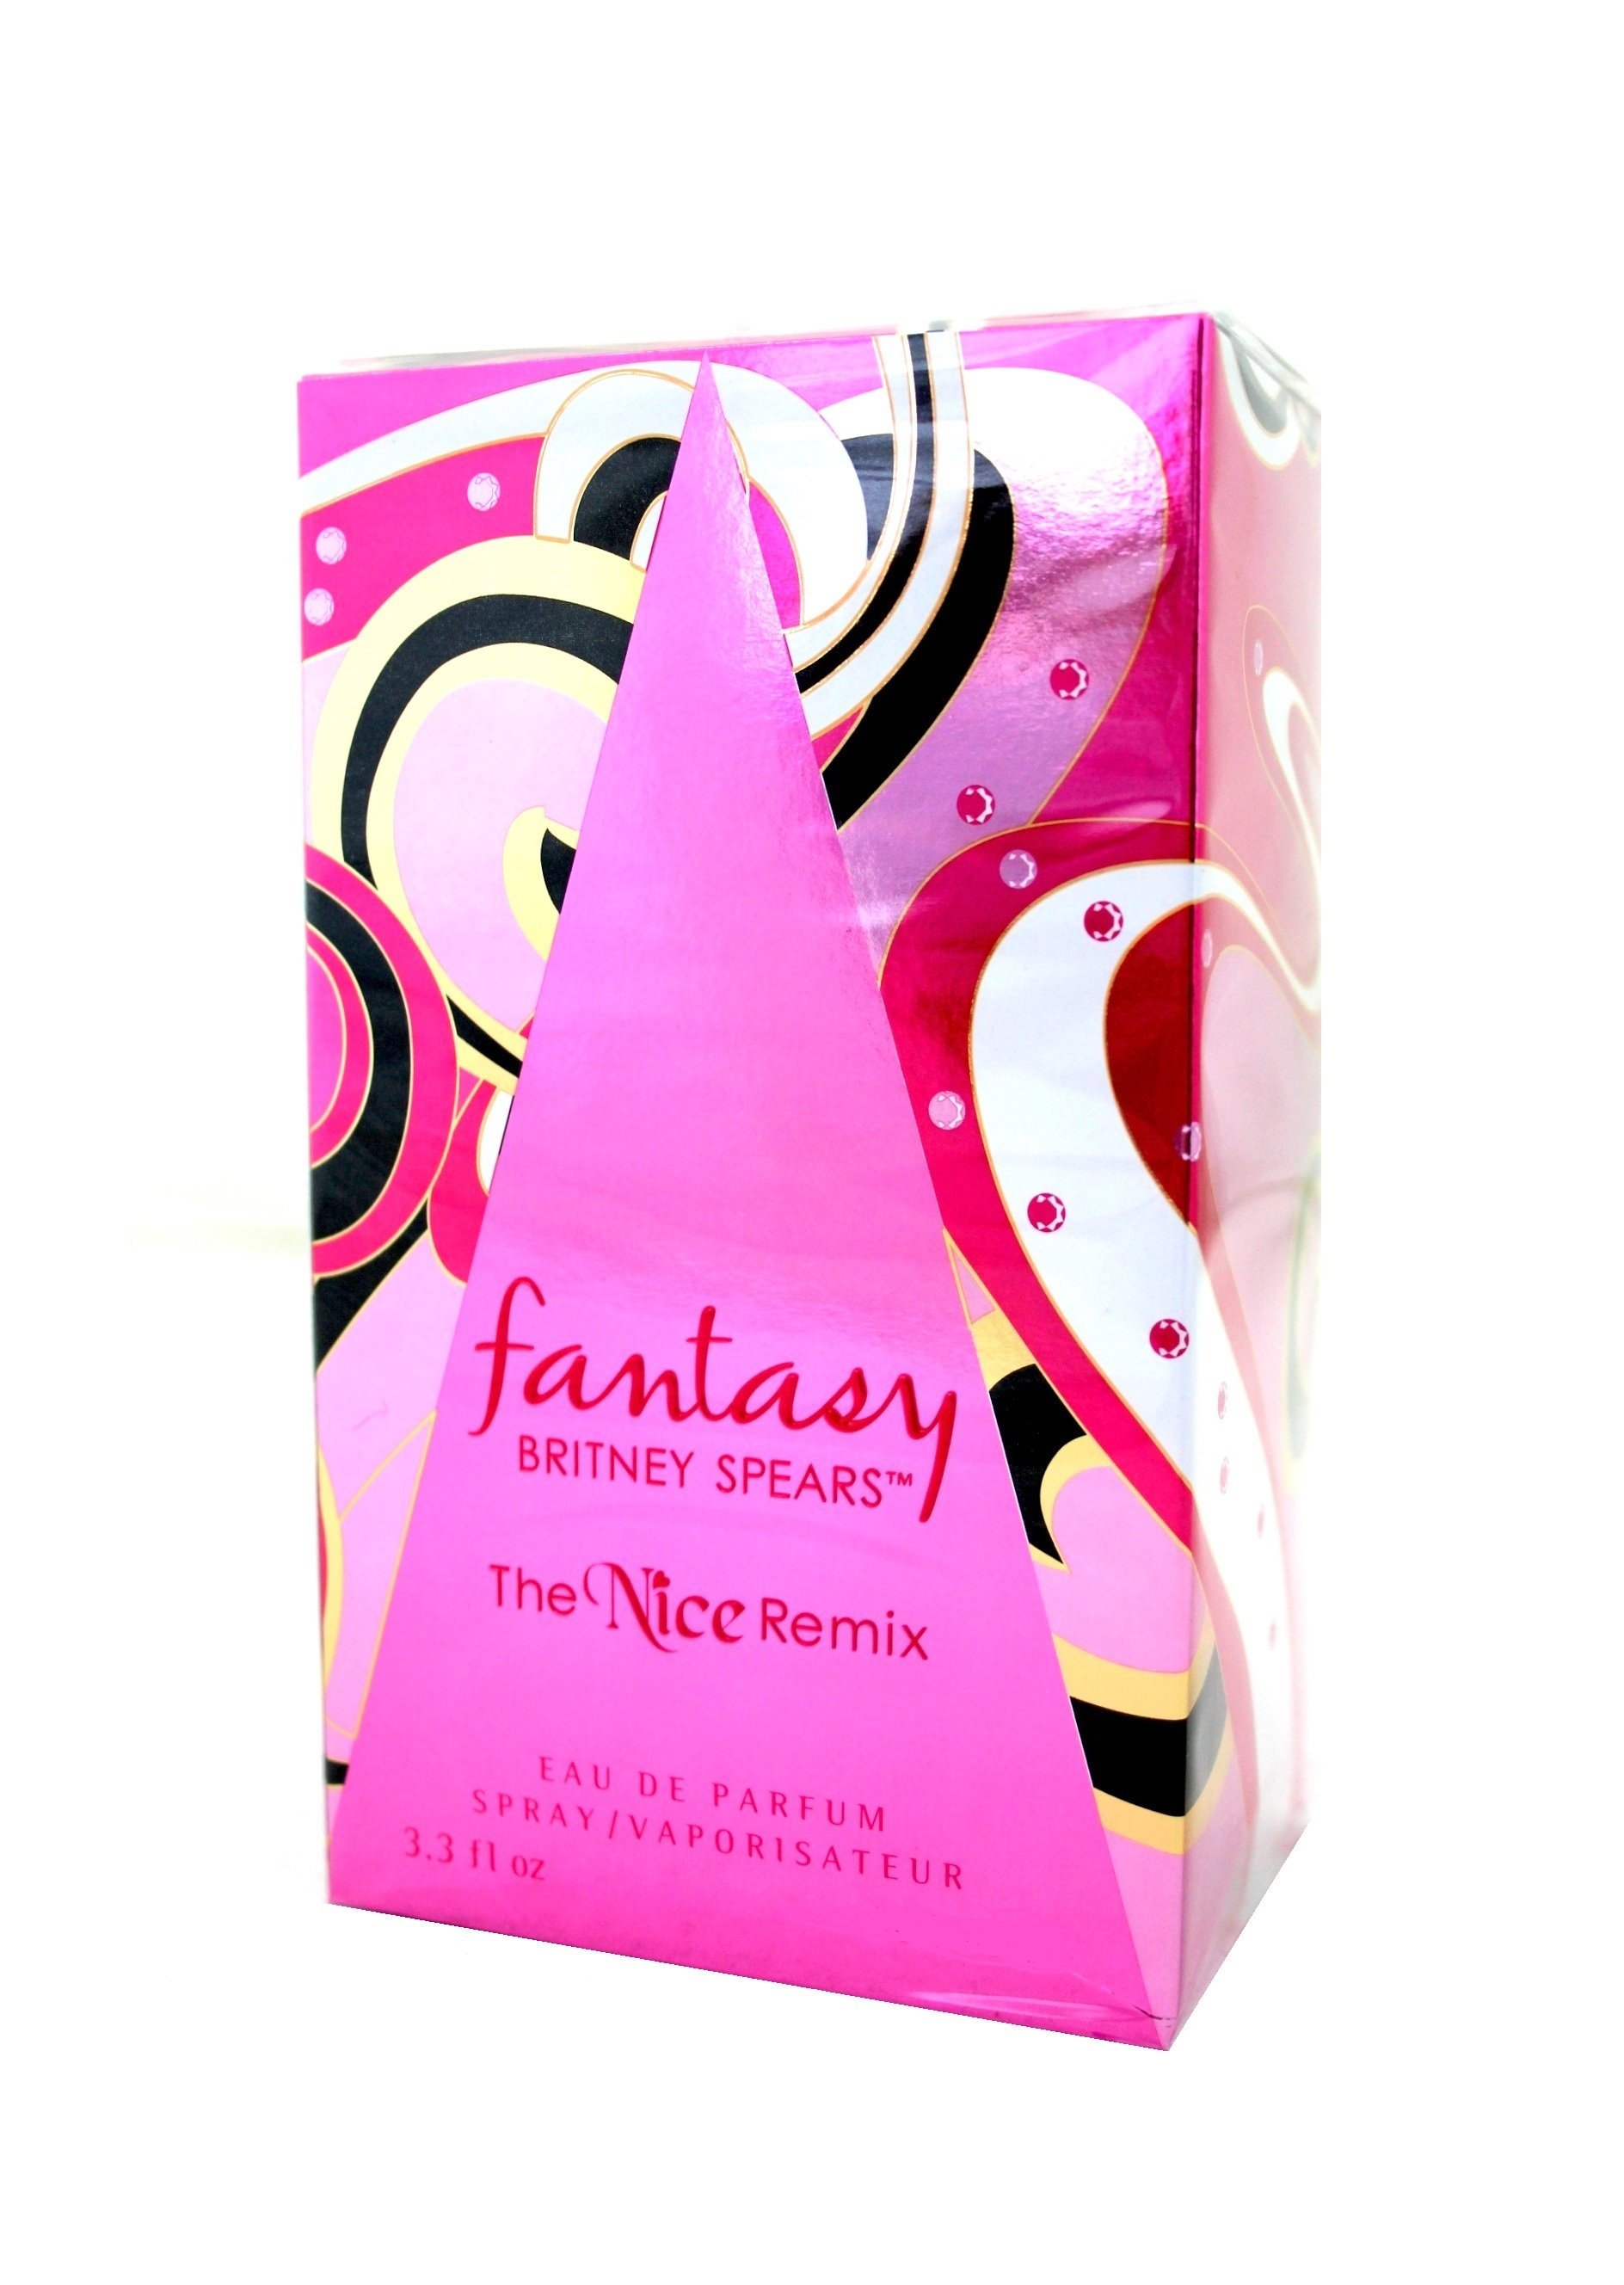 Britney Spears Fantasy The Nice Remix Eau de Parfum